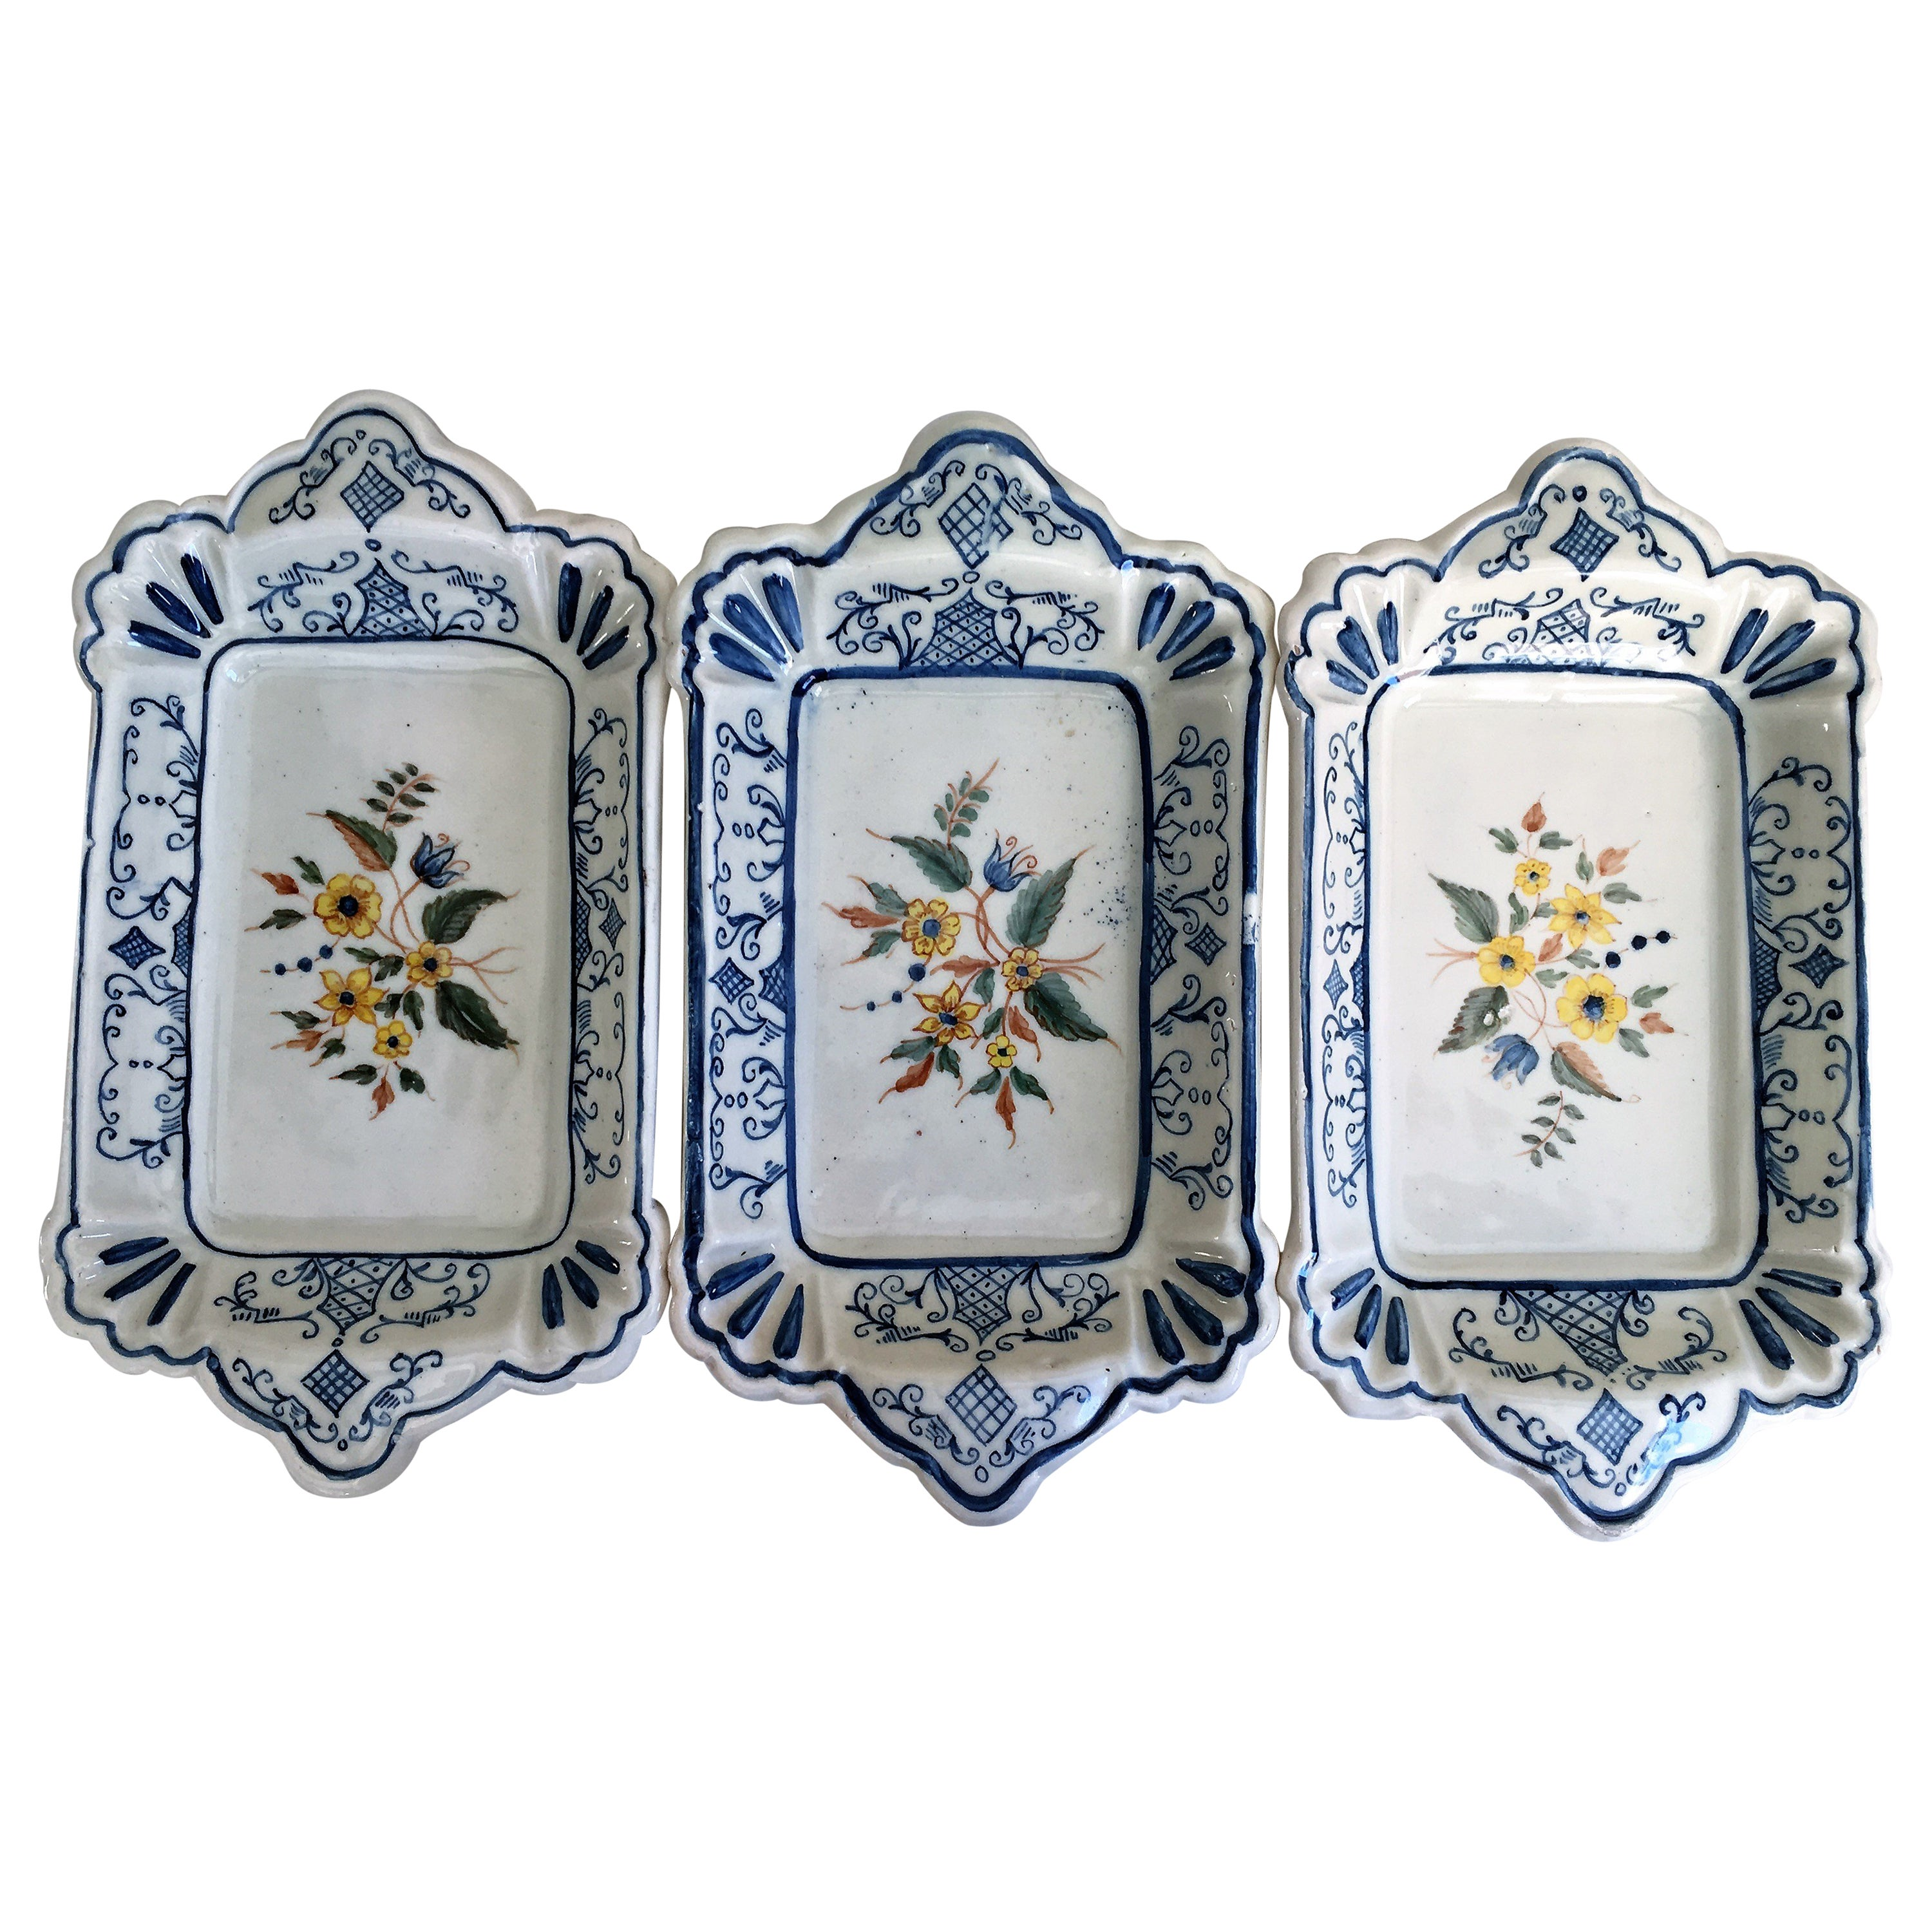 20th Century Set of Three Trays in Blue and Yellow Ceramic, Spain